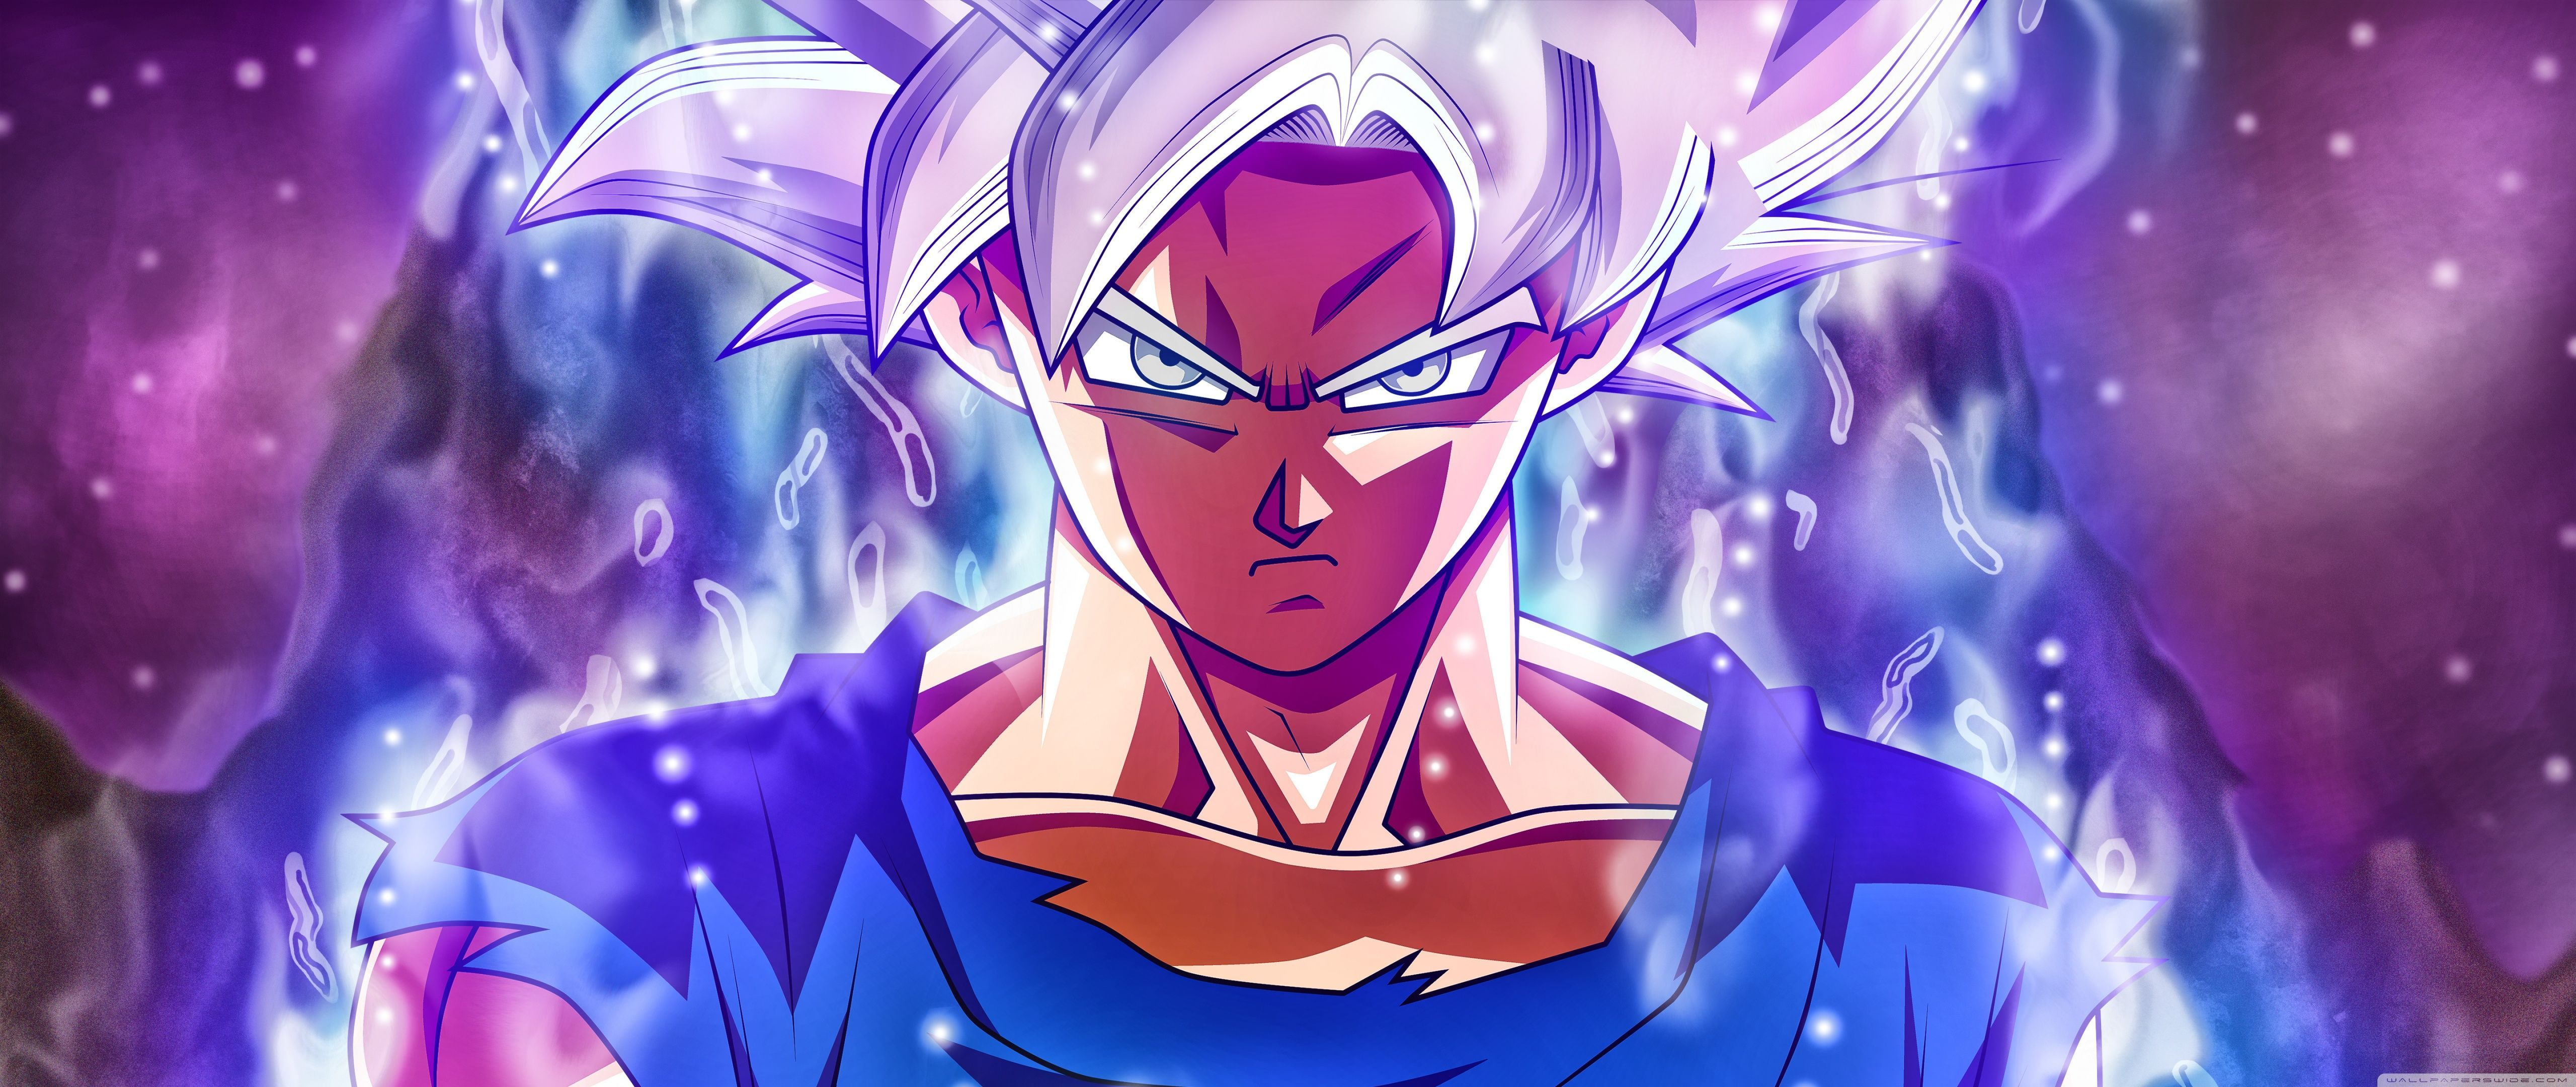 Goku Ultra Instinct 4k Wallpapers Top Free Goku Ultra Instinct 4k Backgrounds Wallpaperaccess